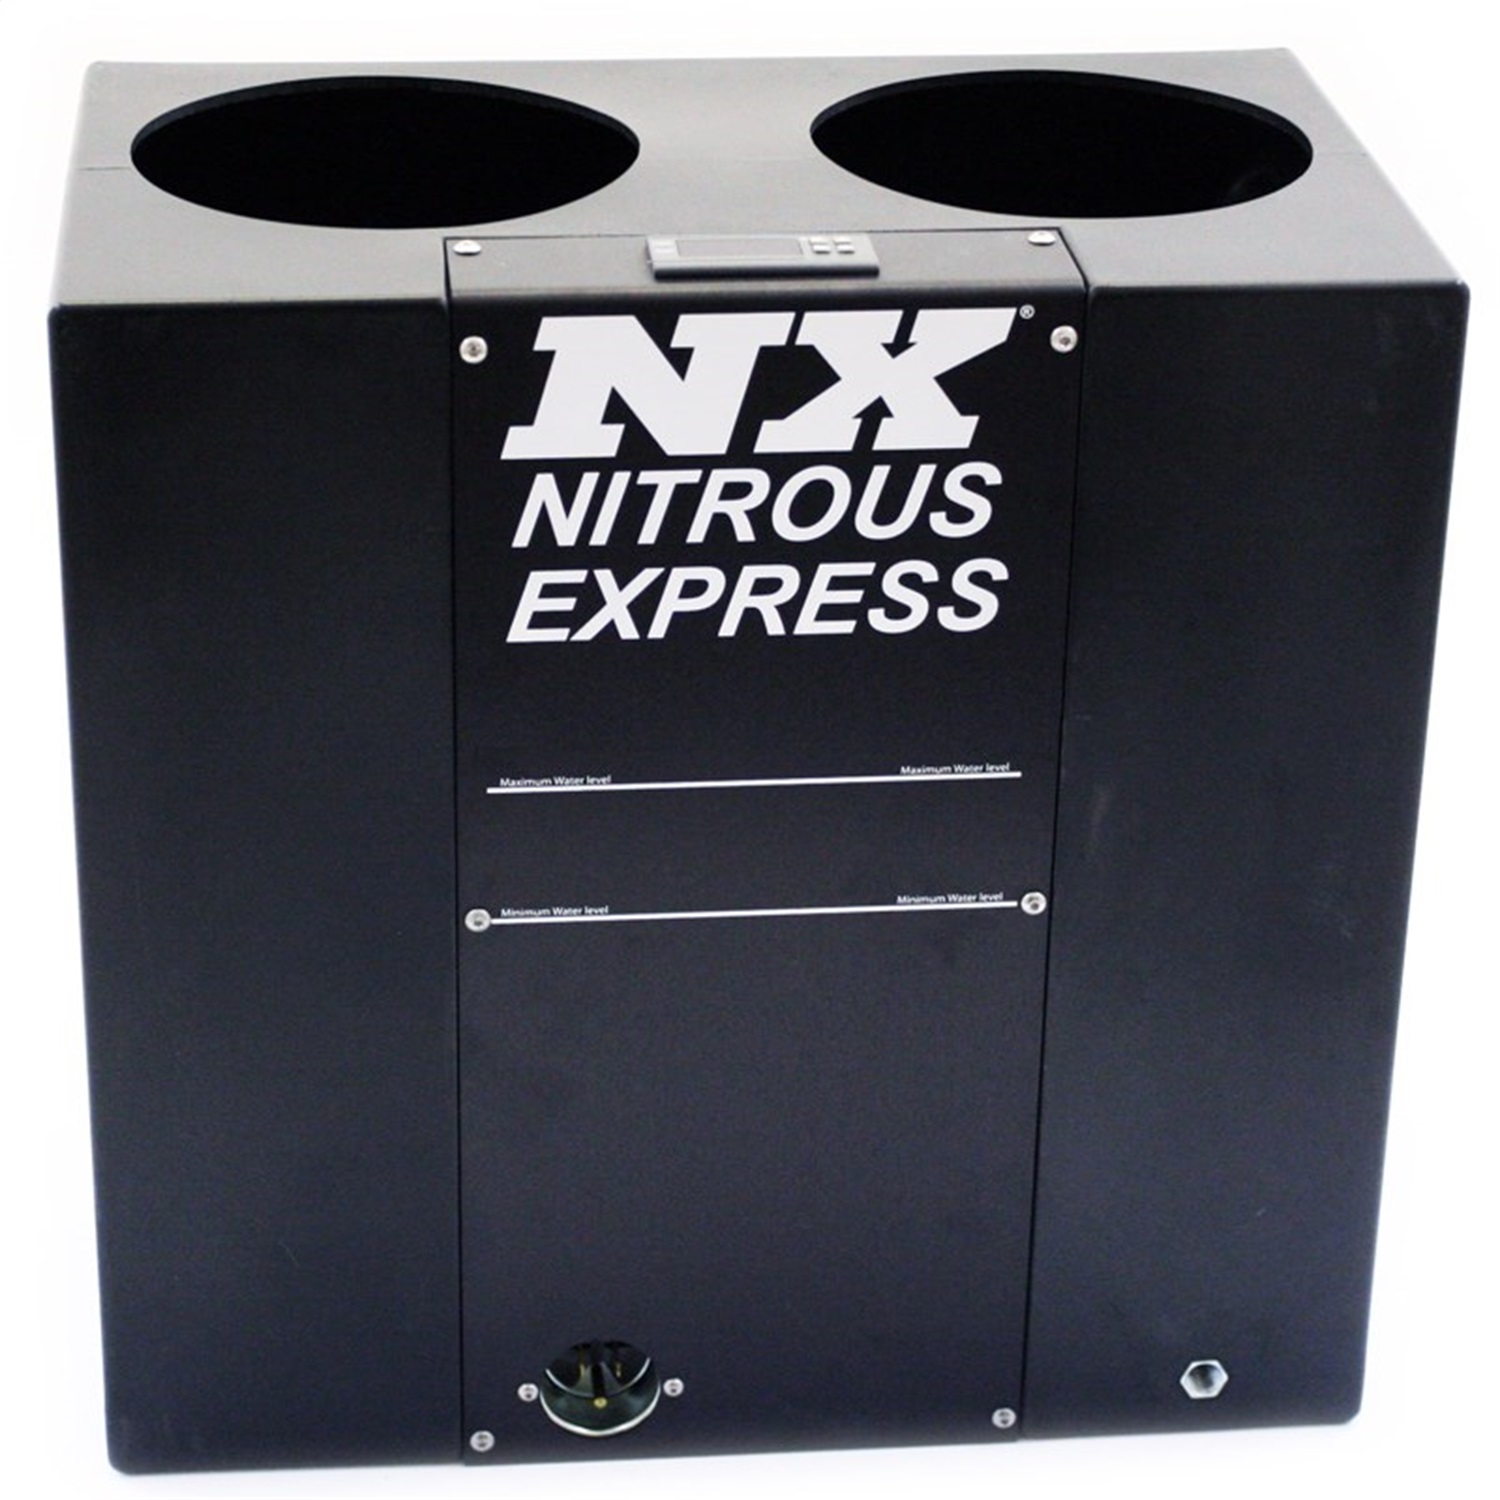 Nitrous Express 15935 Nitrous Bottle Heater